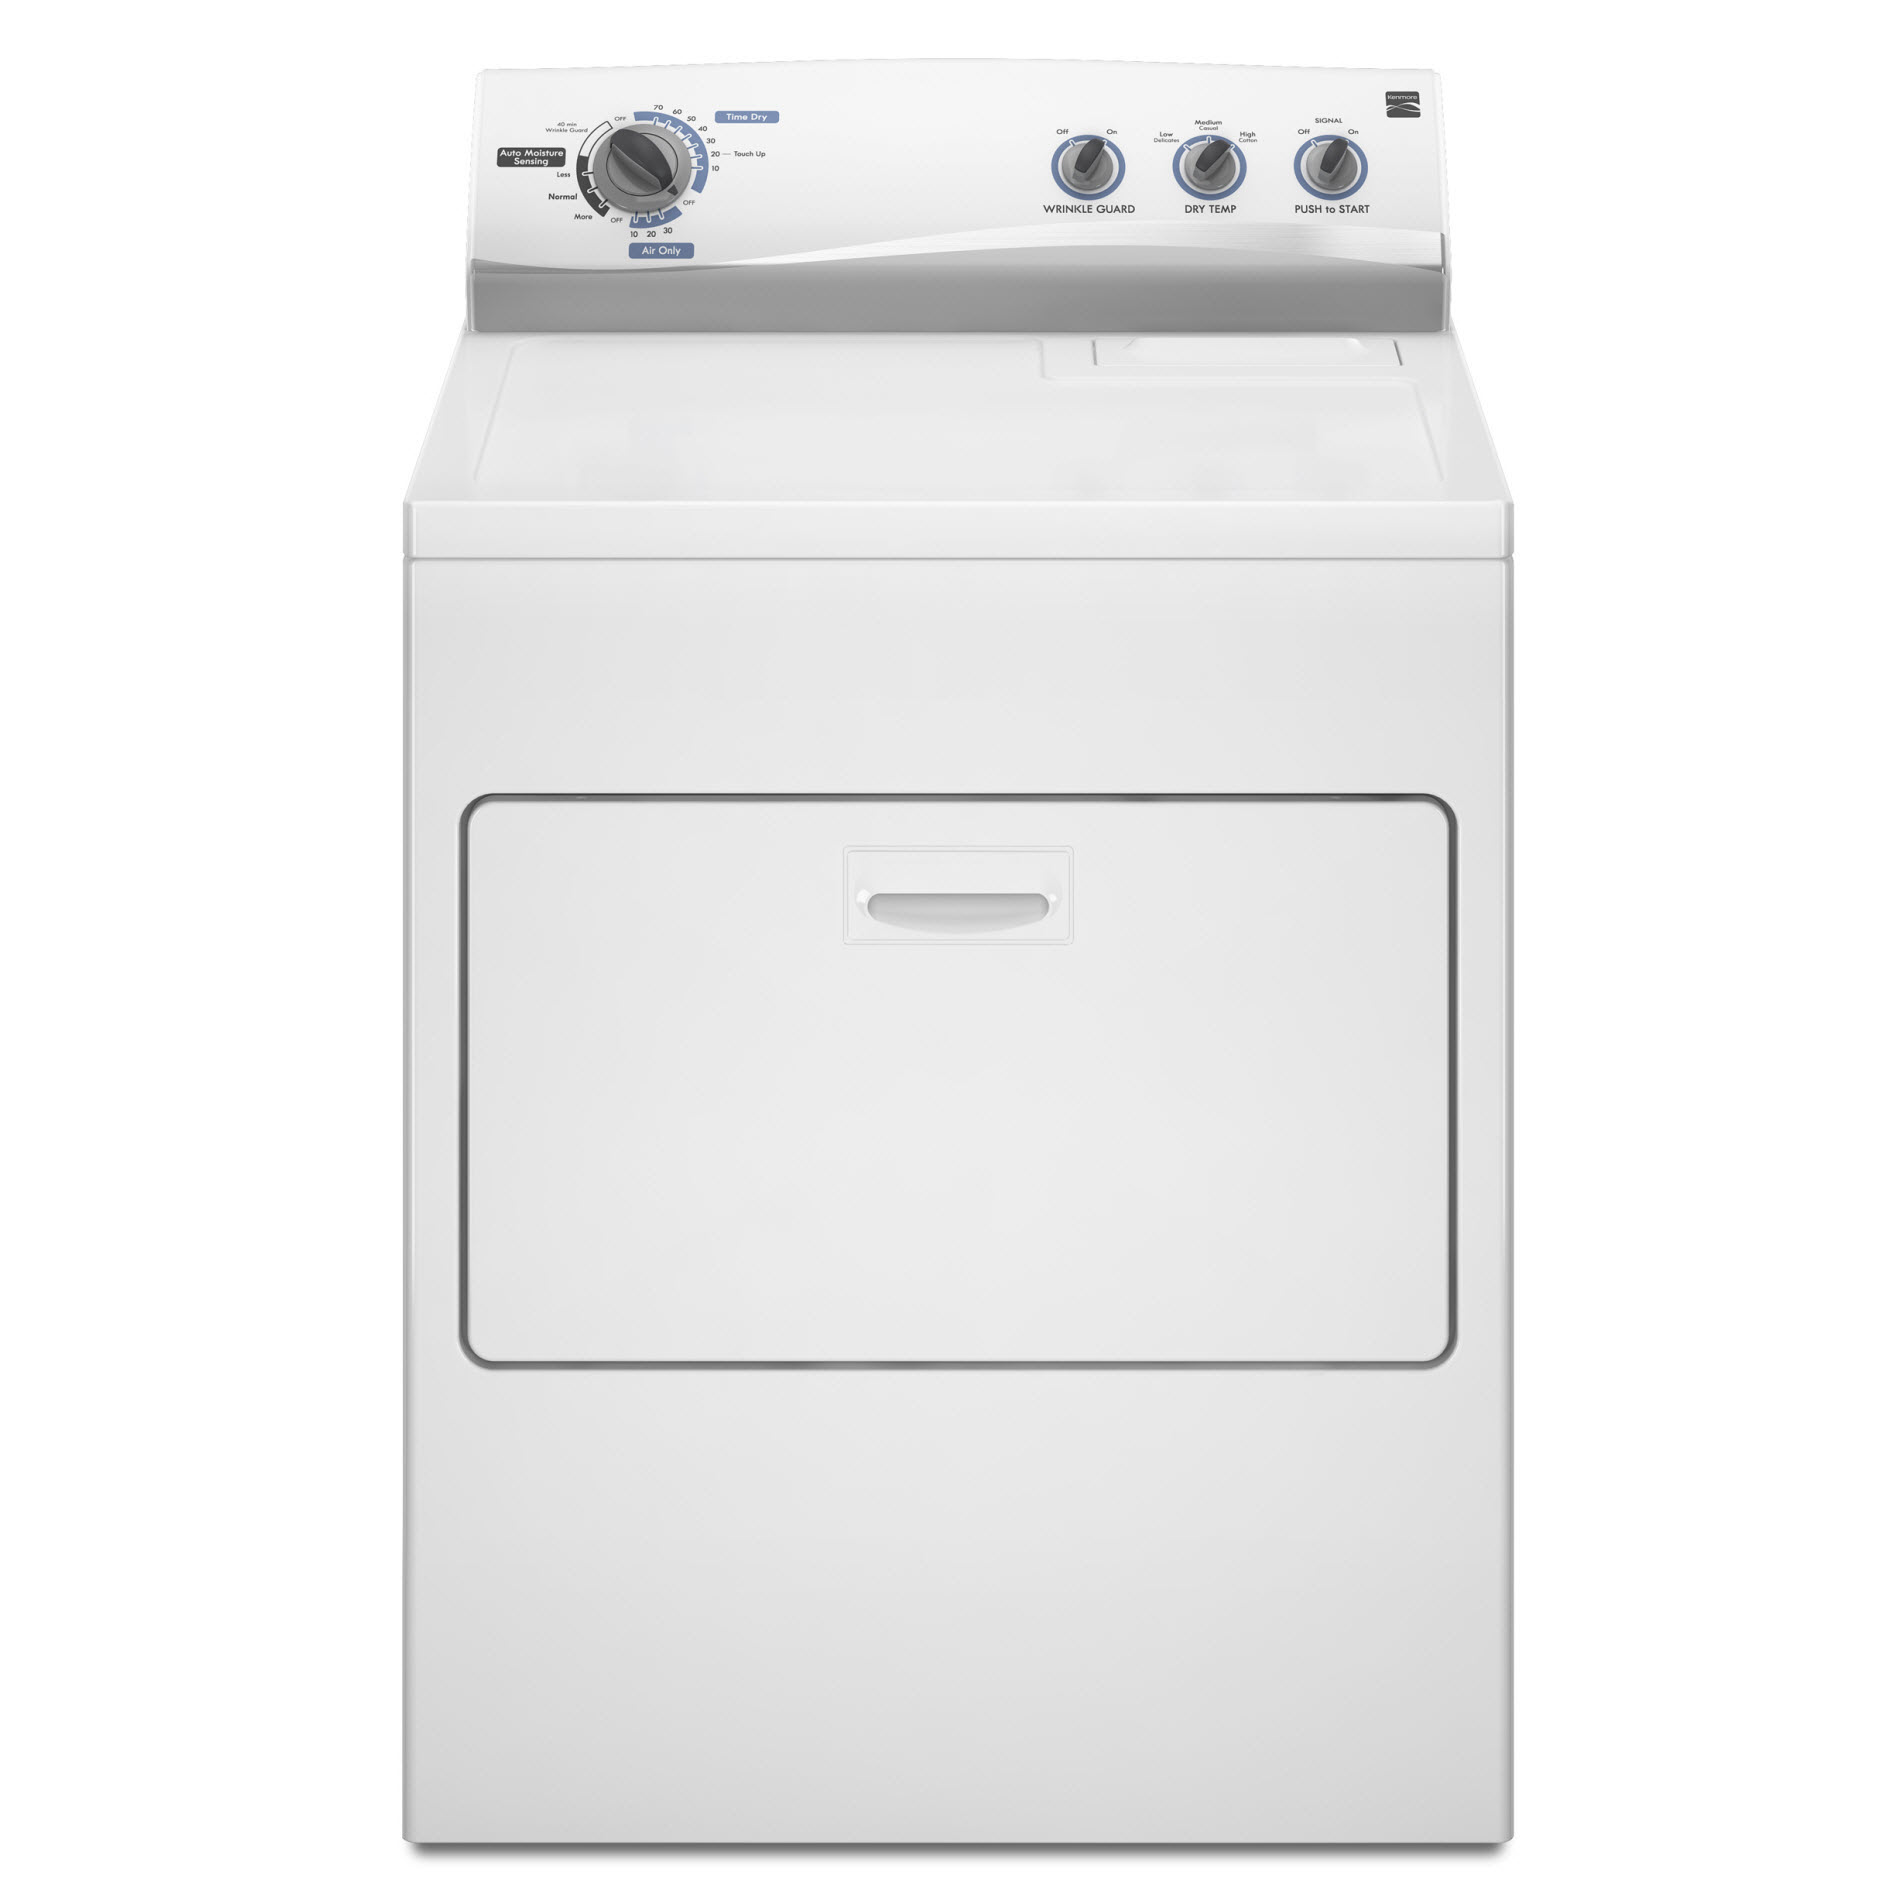 small resolution of kenmore washer fuse location kenmore washer noise wiring whirlpool dryer belt diagram whirlpool dryer electrical schematic